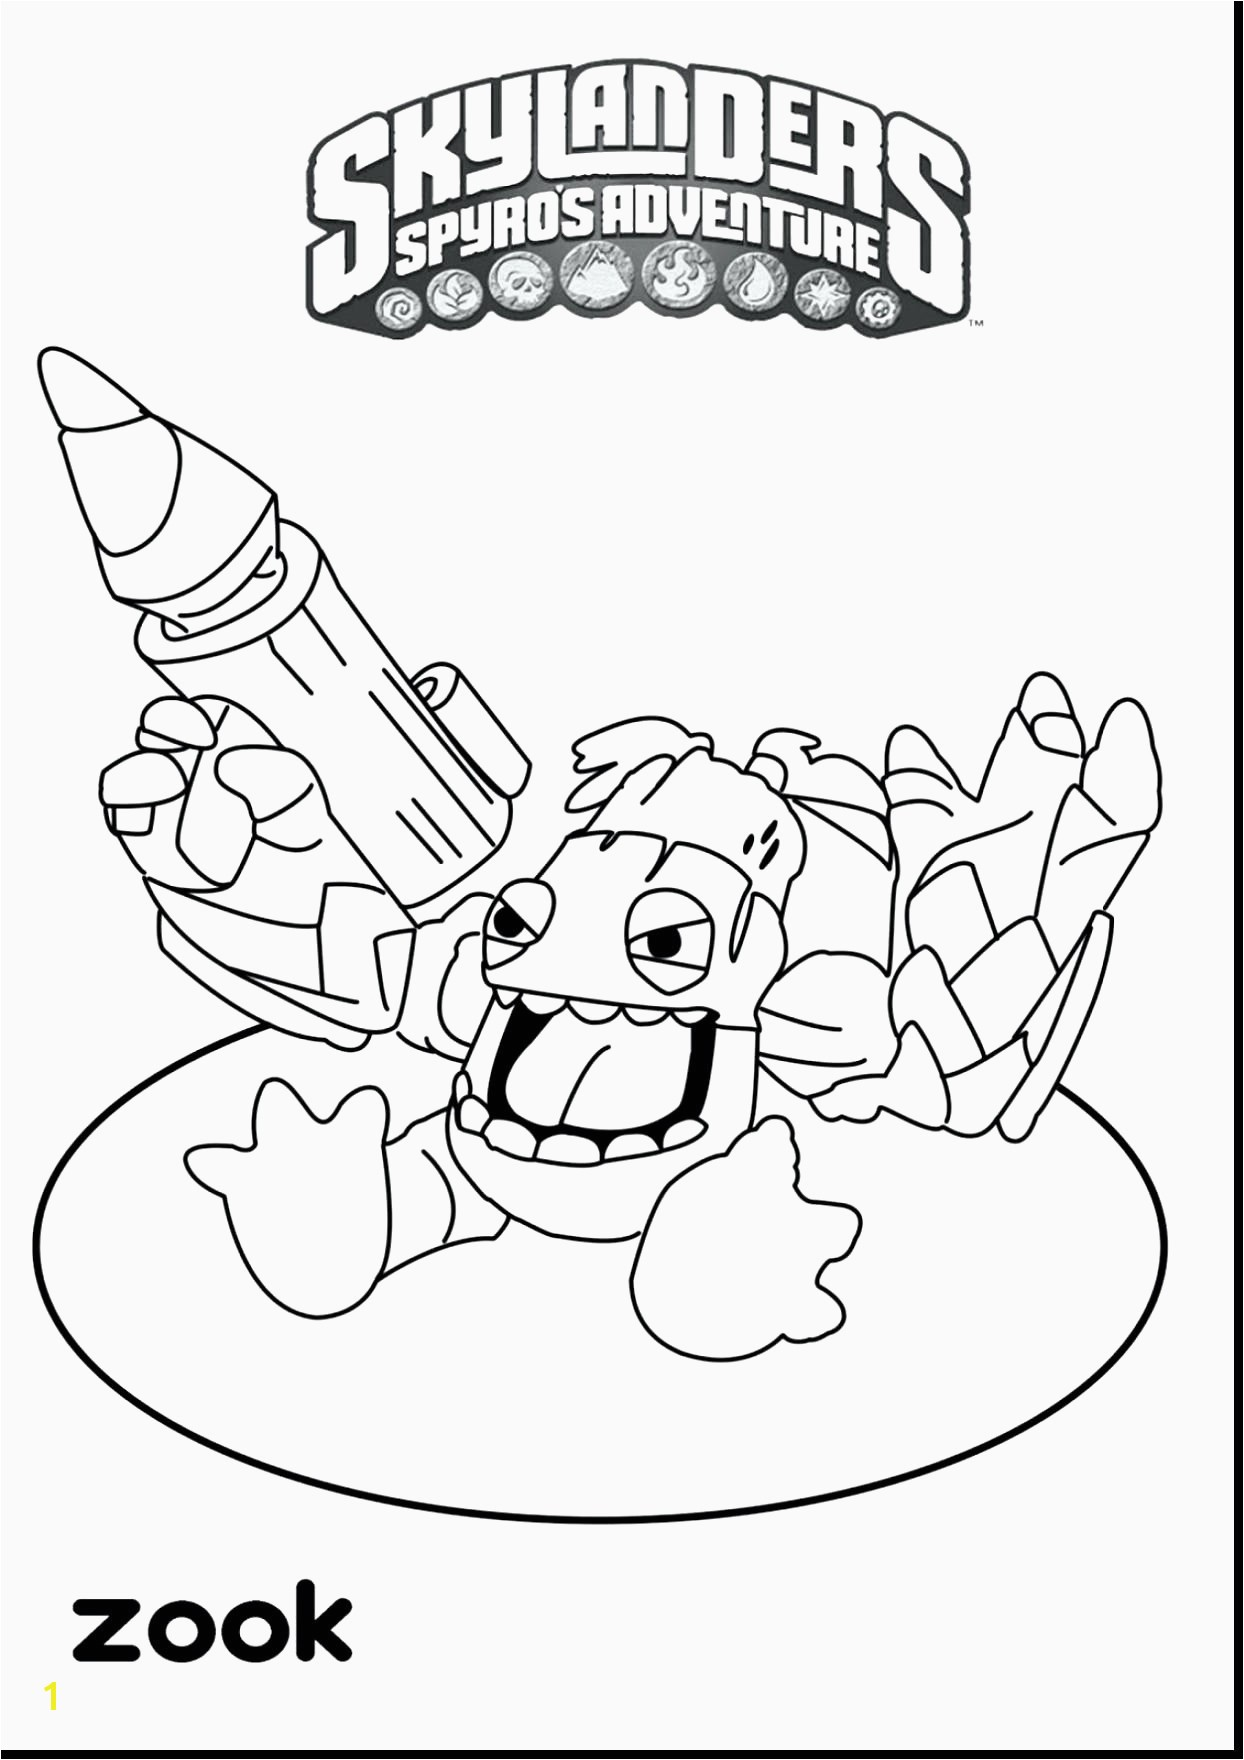 Crayola Coloring Pages Star Wars Awesome Crayola Coloring Pages Barbie Katesgrove